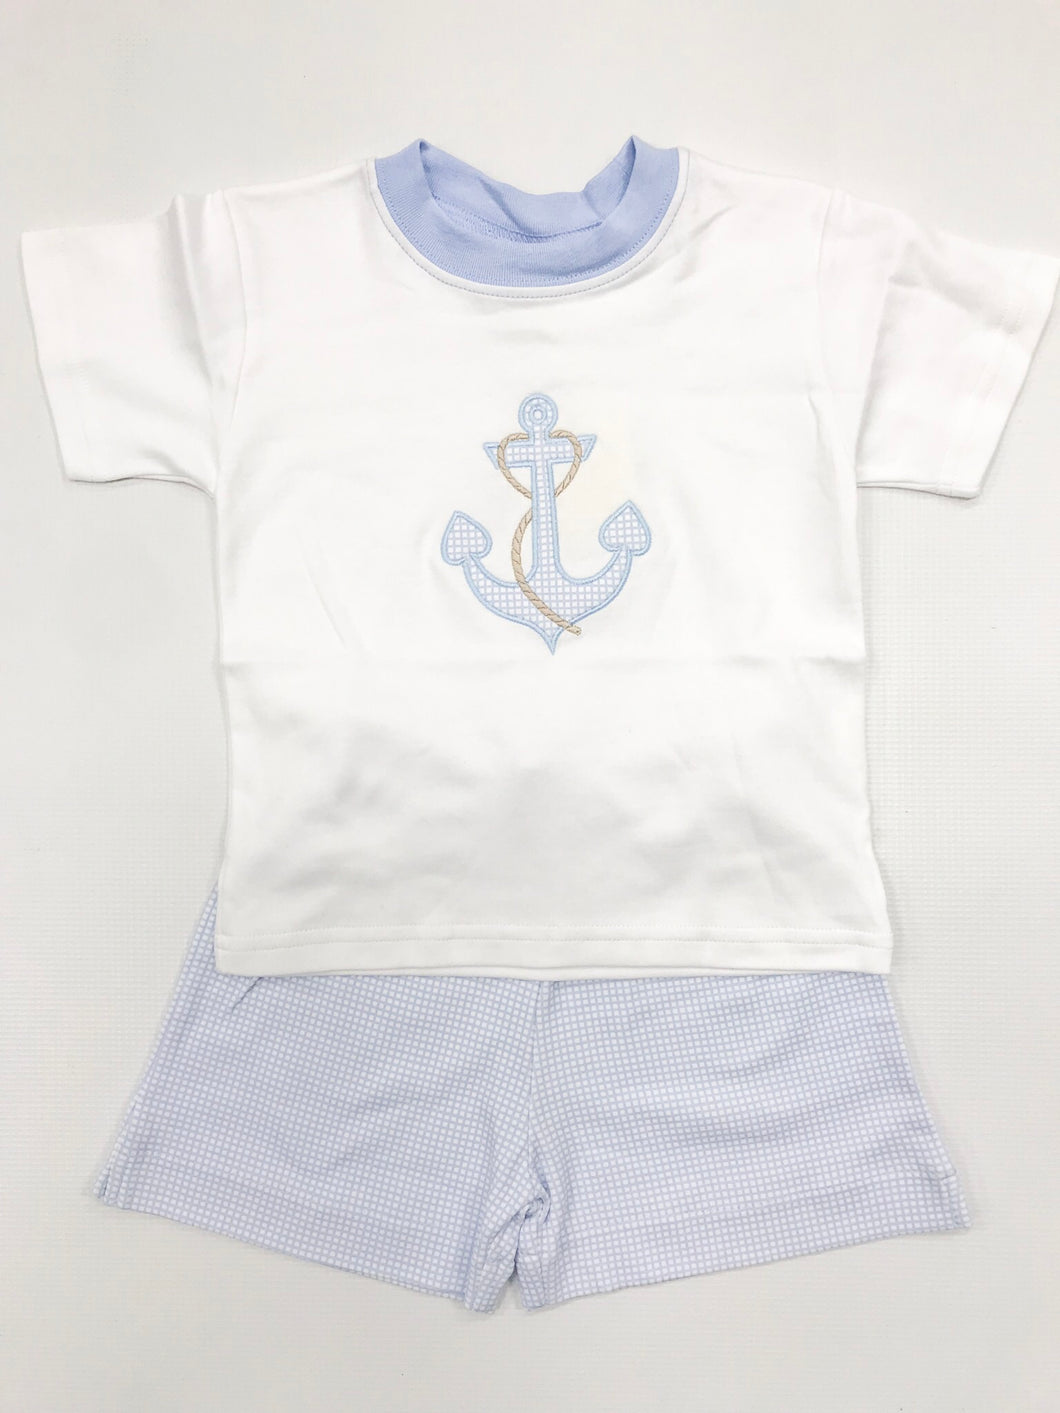 Lt. Blue Gingham Sailor Short Set